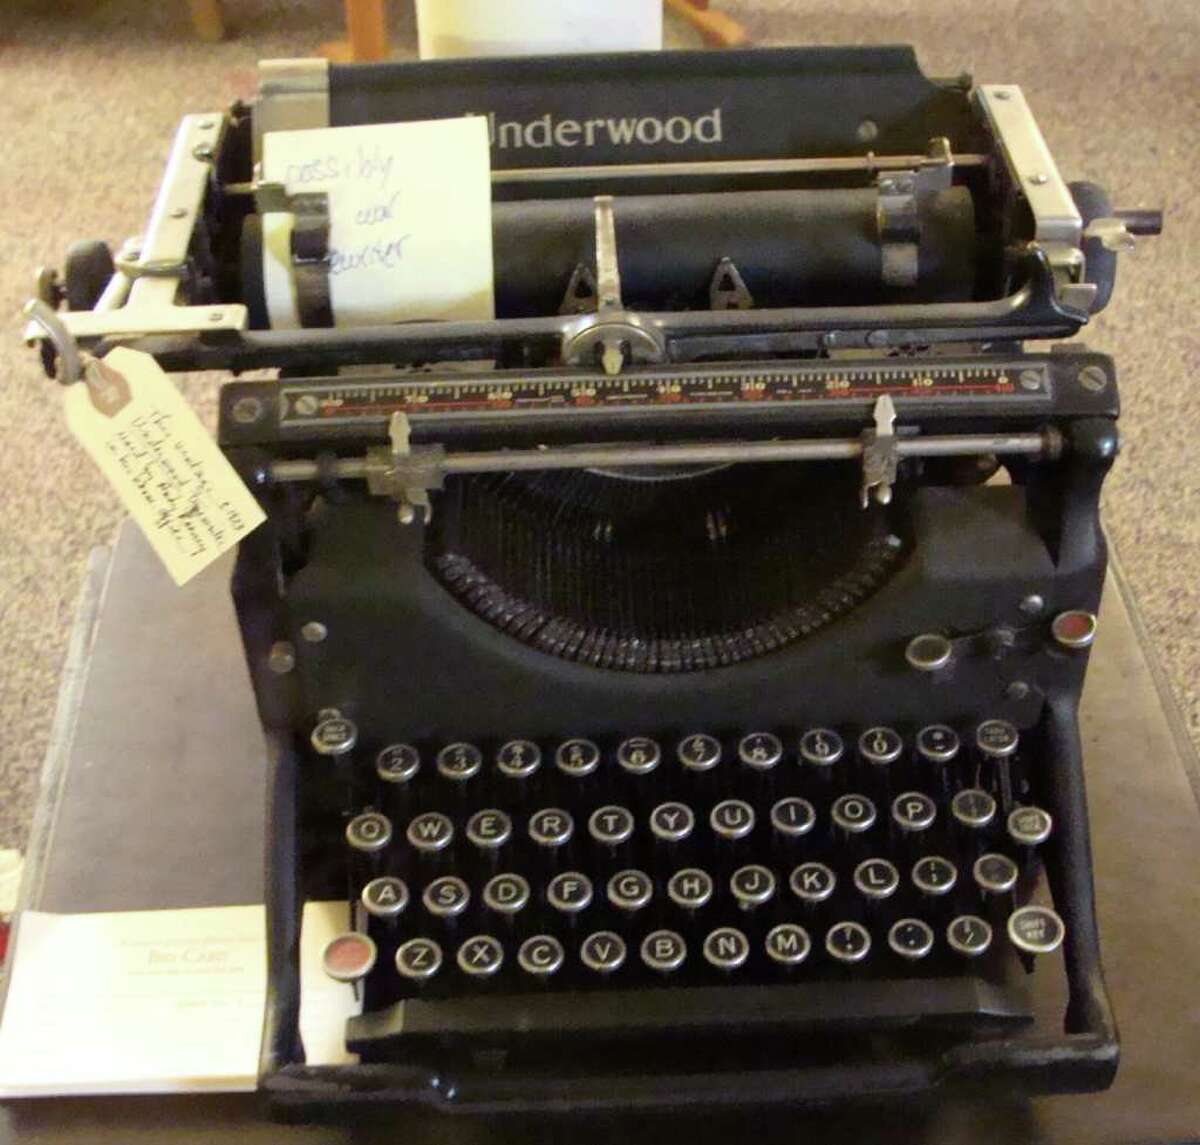 This Underwood typewriter, circa 1923, owned by veteran journalist and commentator Andy Rooney was among the items on sale Friday, the first day of a three-day estate sale at Rooney's home in the Rowayton section of Norwalk.